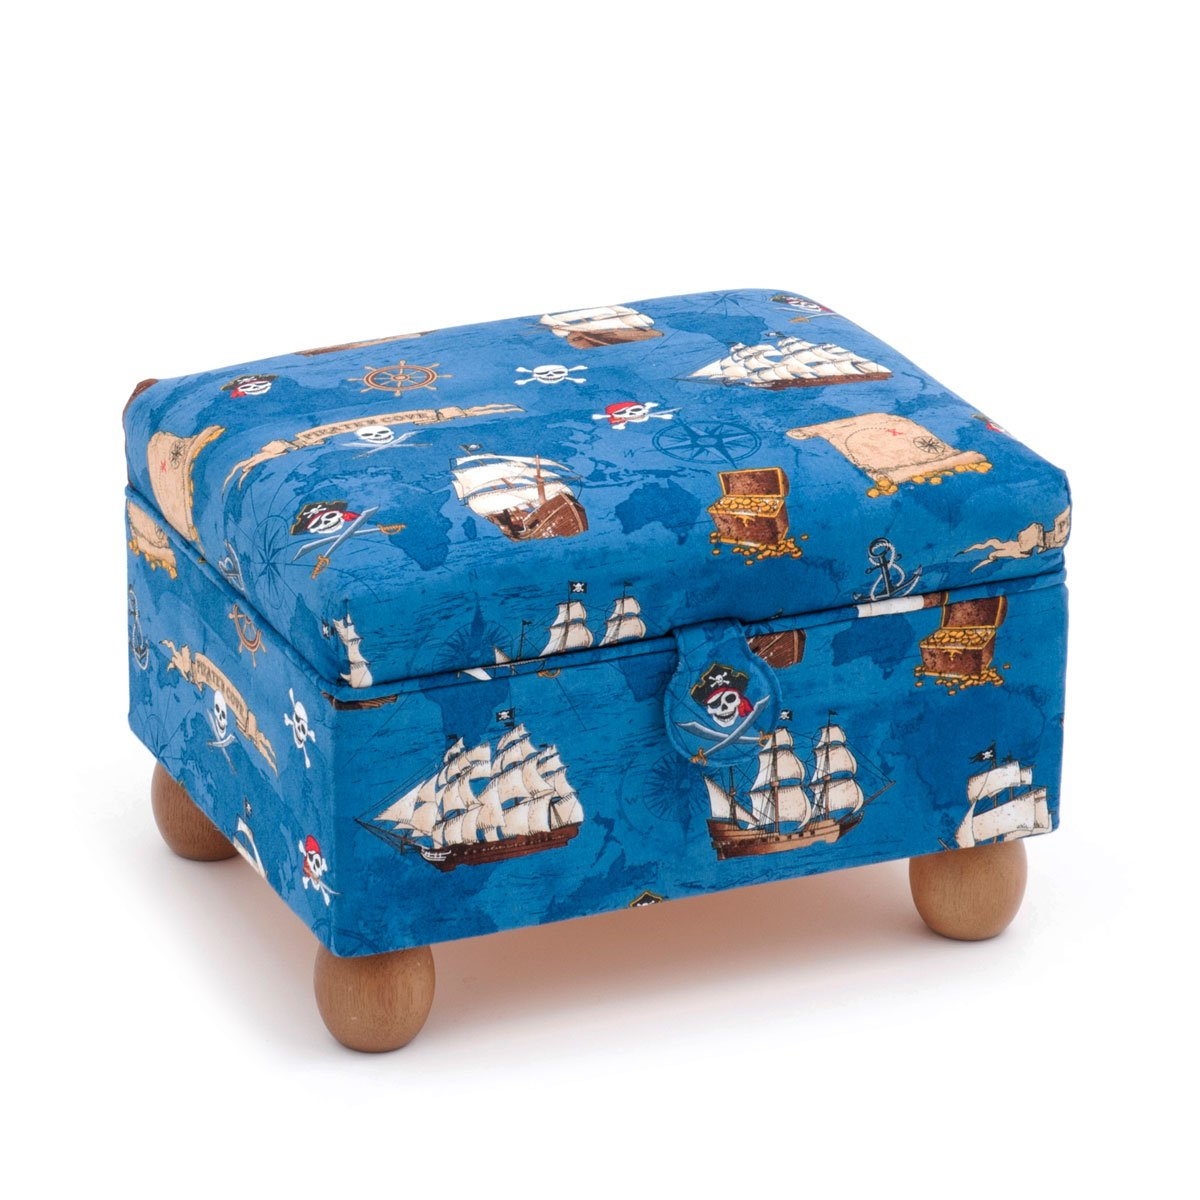 Hobby Gift 'Pirate' Extra Large Sewing Stool 26 x 33 x 22cm (d/w/h)